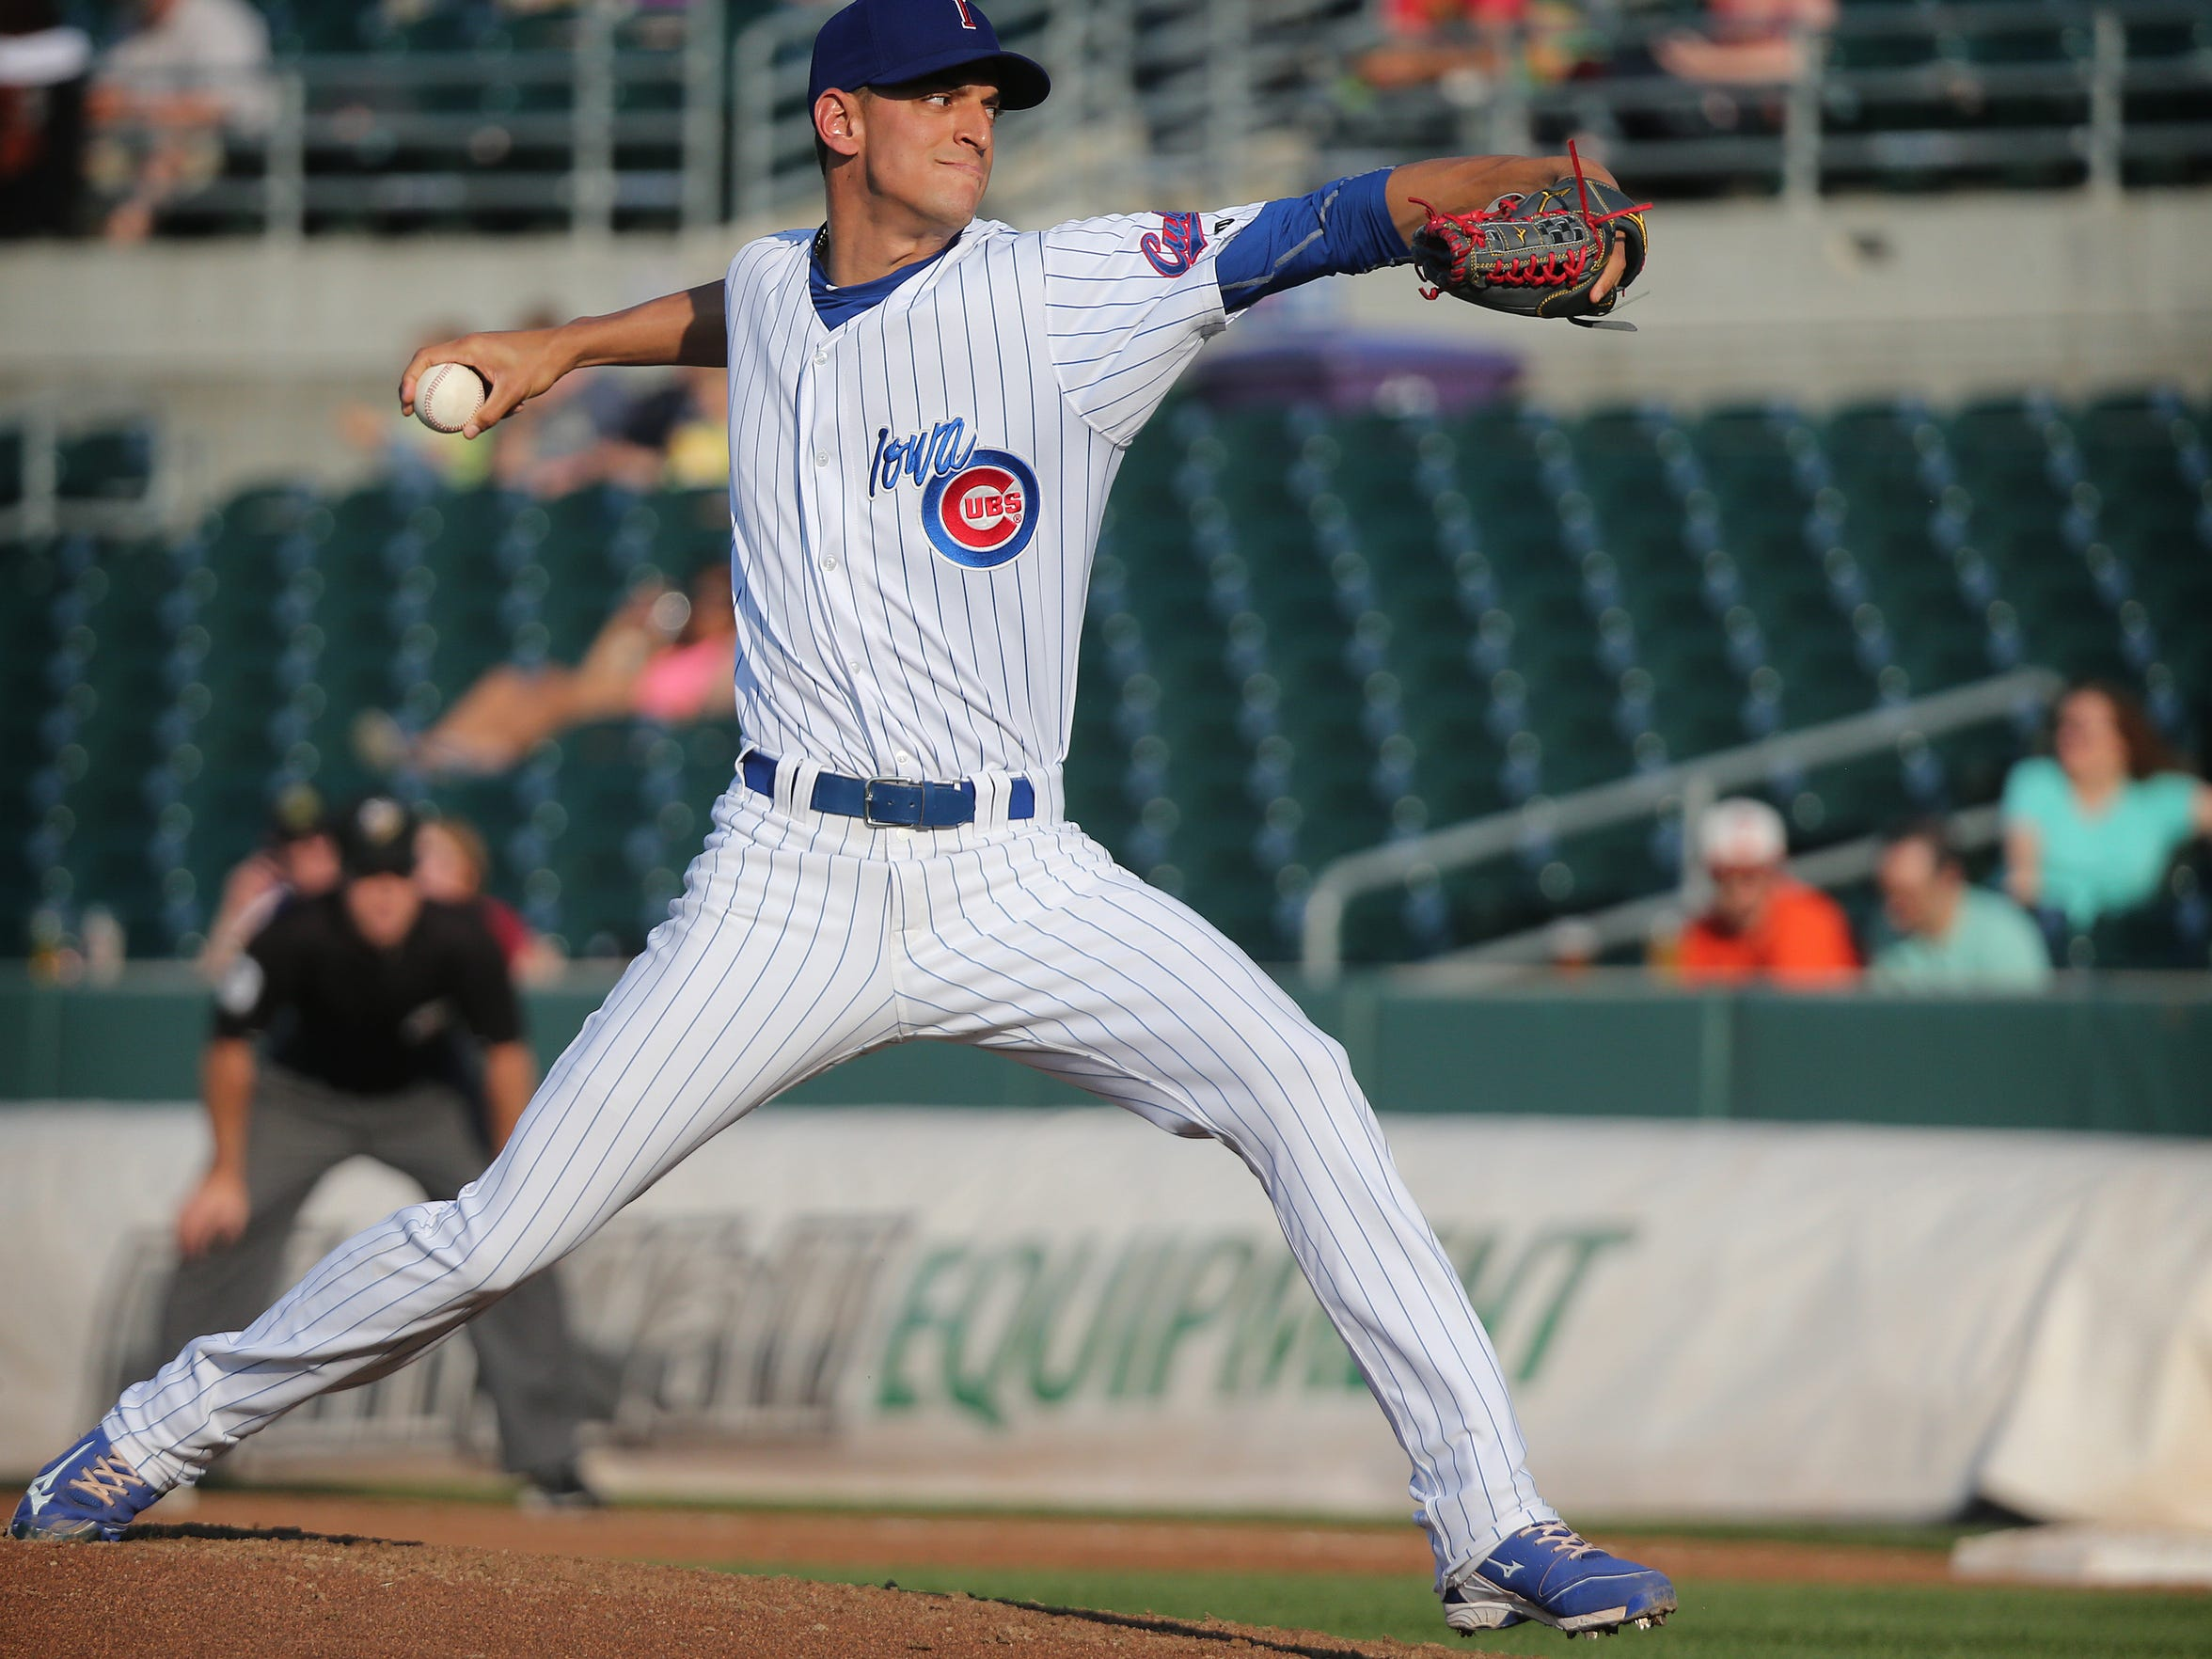 Iowa Cubs pitcher Armando Rivero pitches during a game